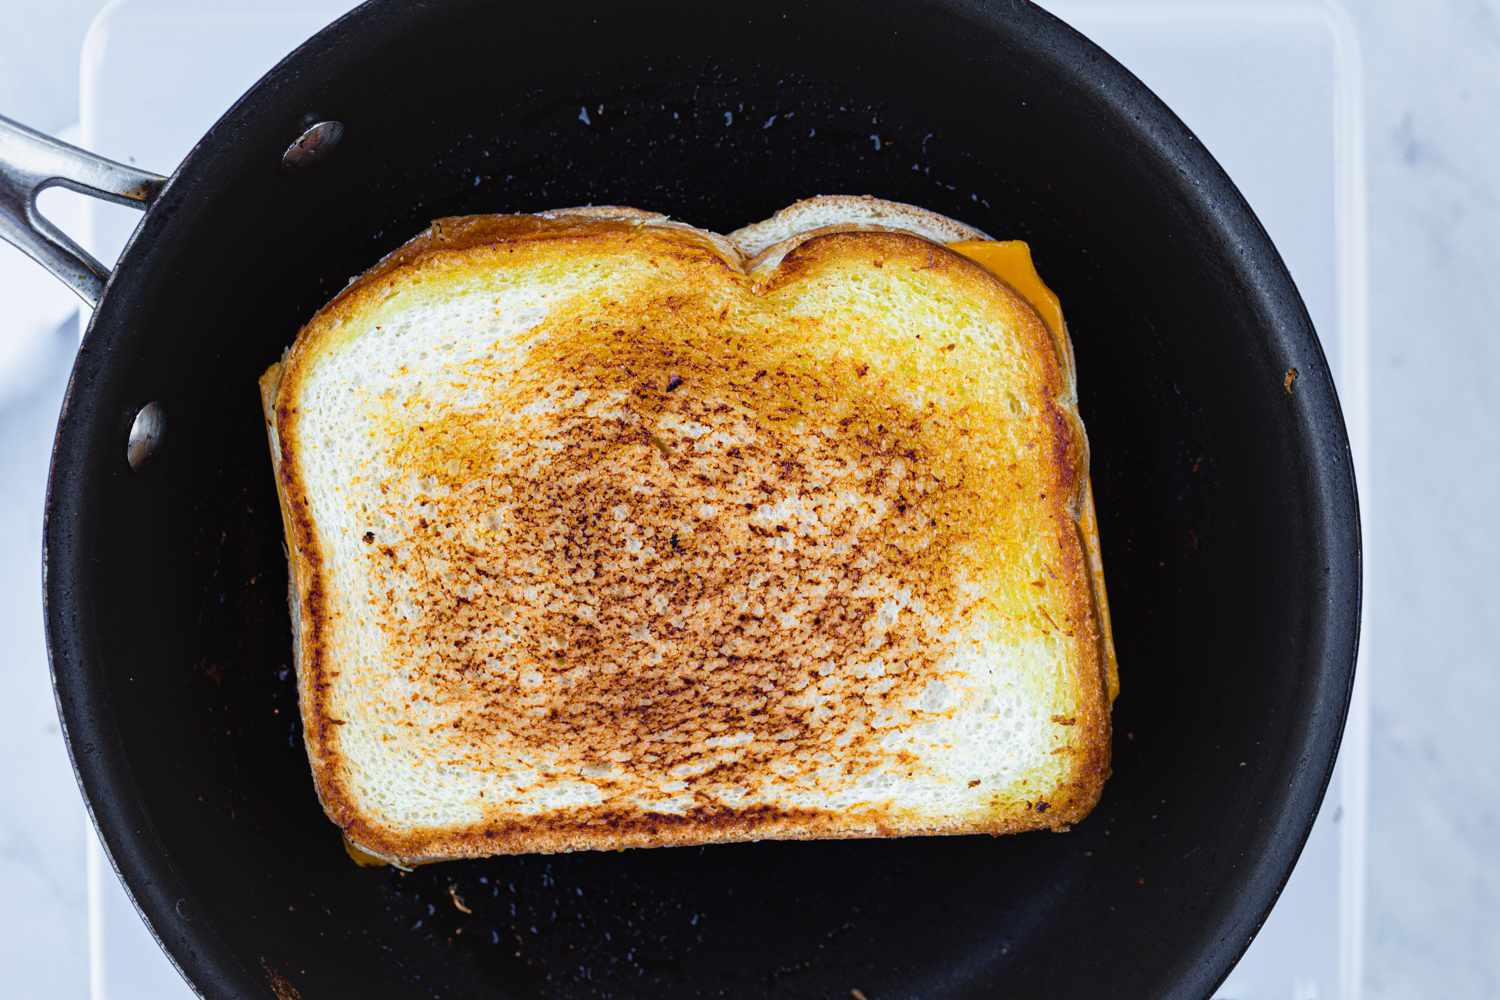 cook grilled cheese on the other side